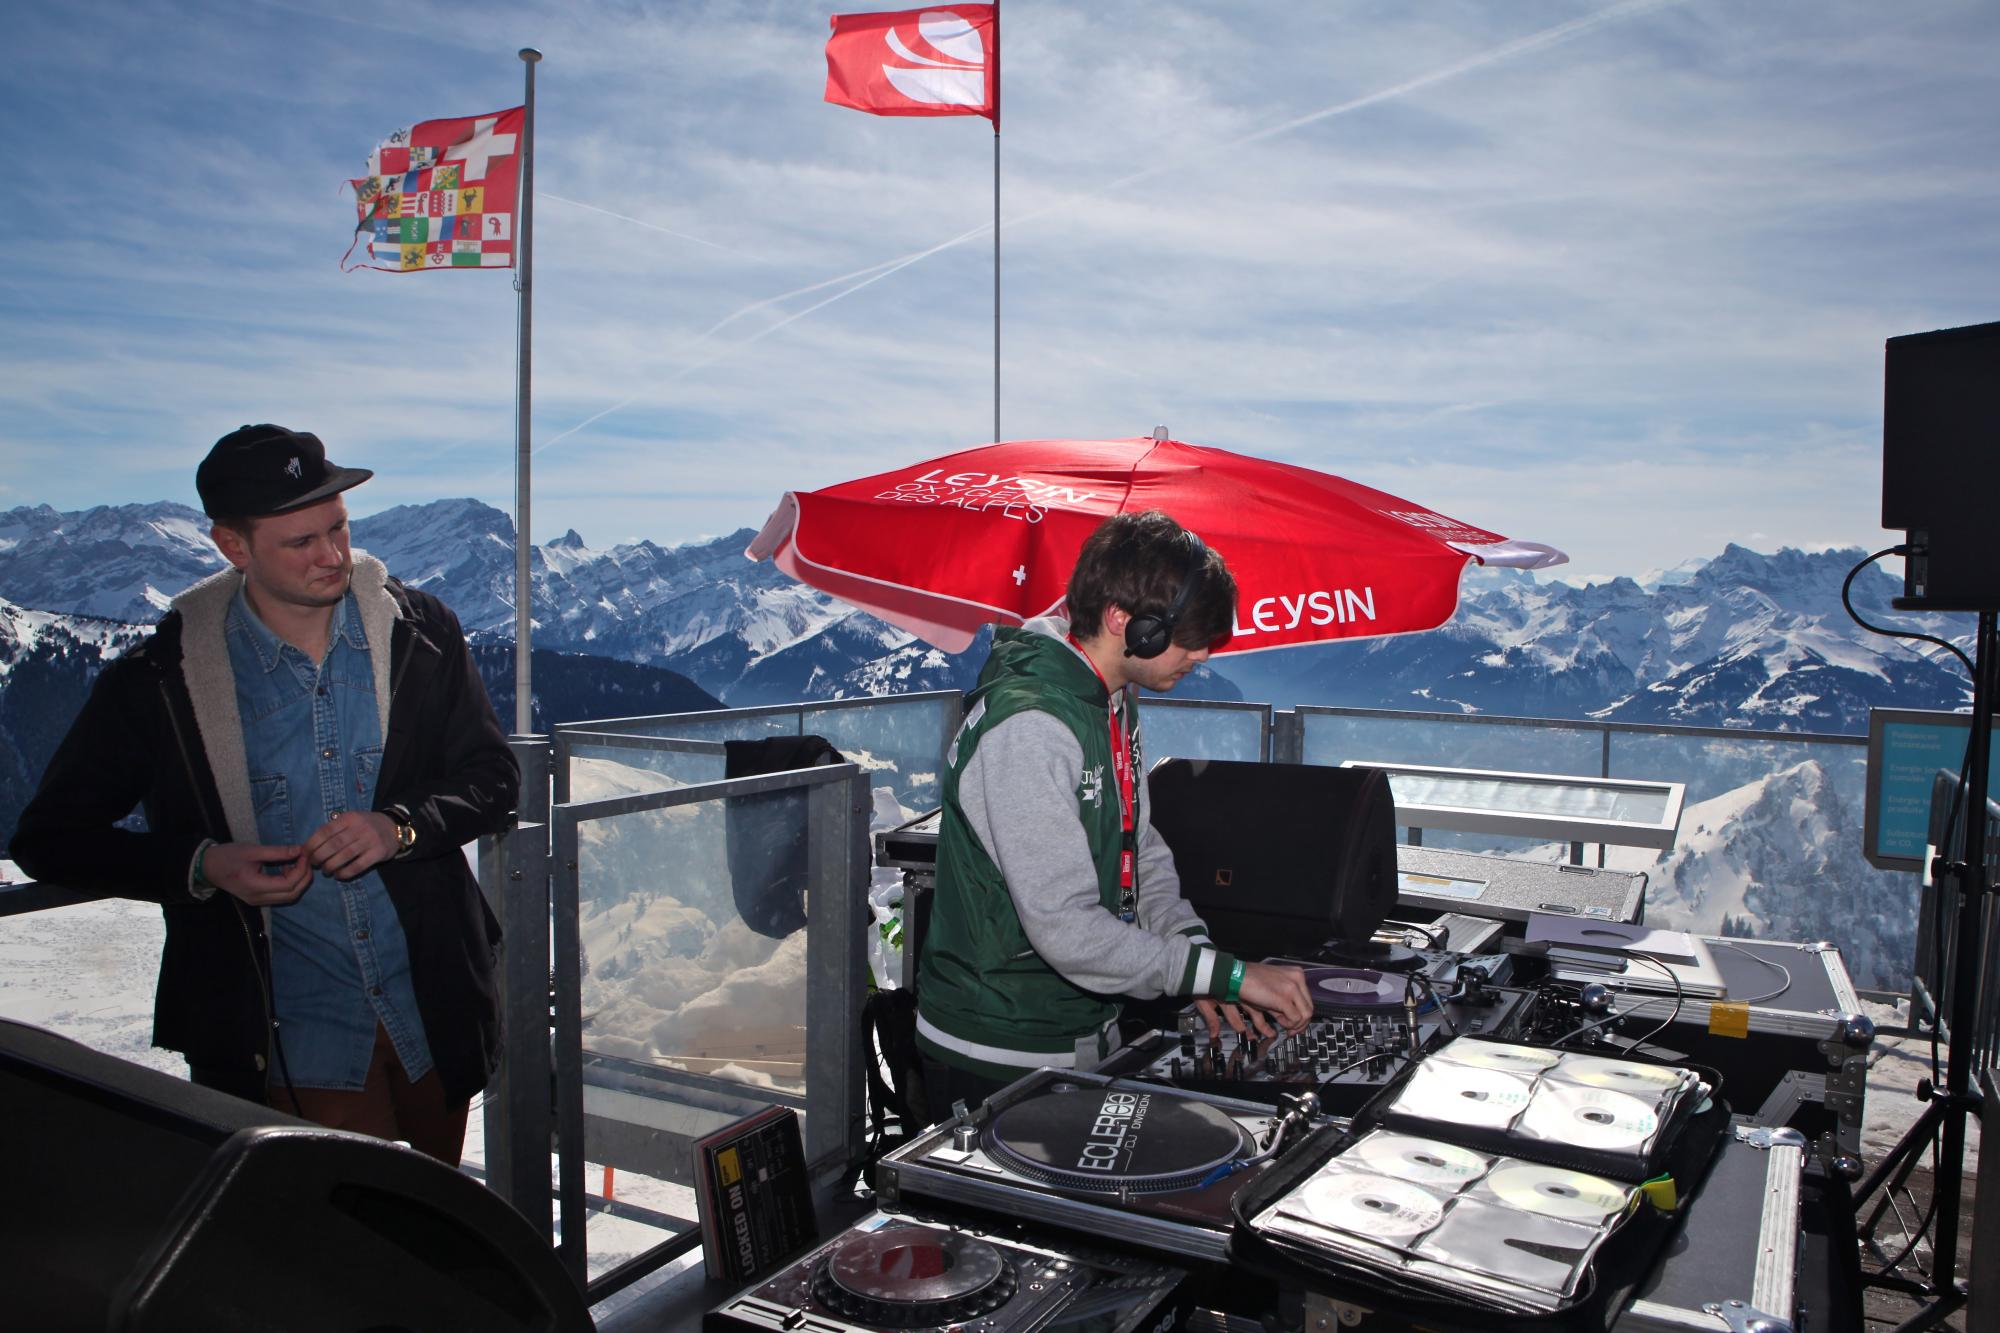 Worldwide Festival Leysin